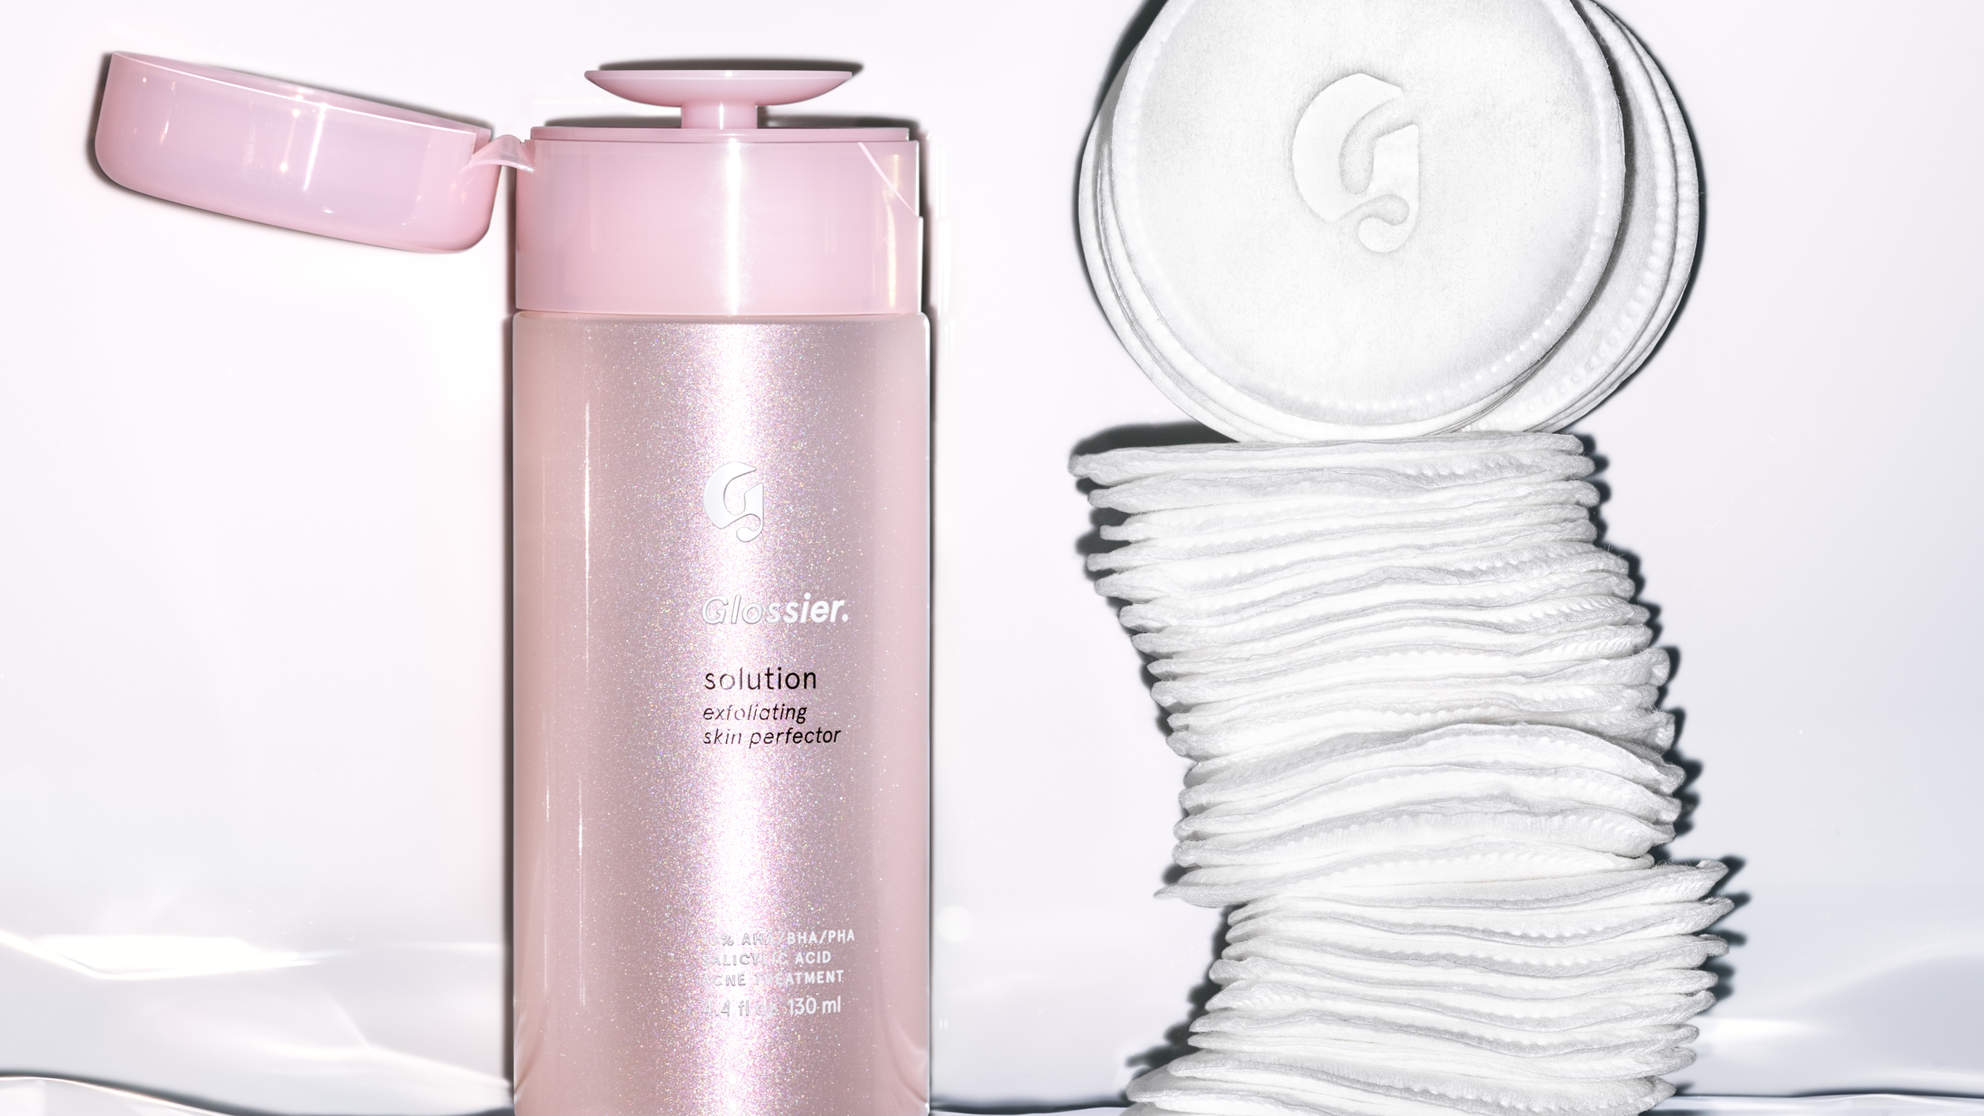 Glossier Solution